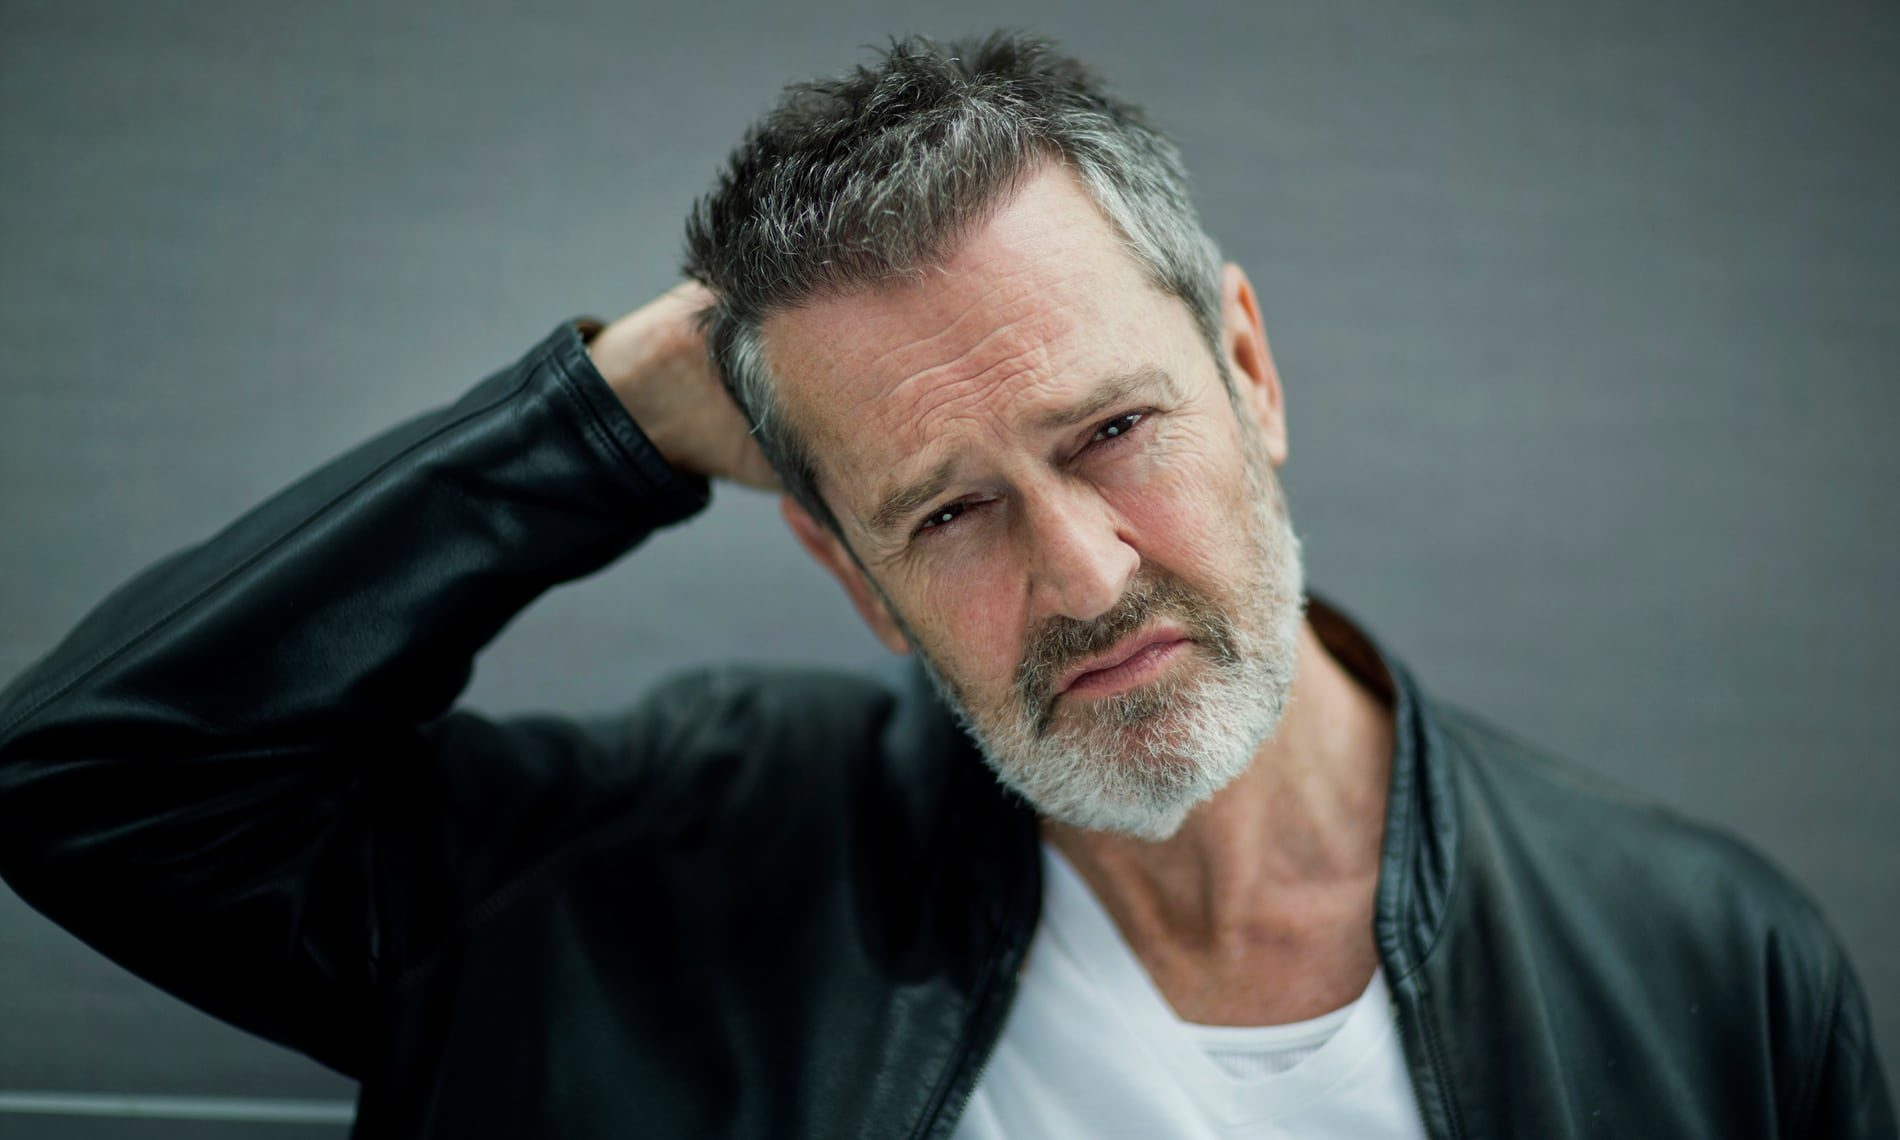 'I was living in terror for my life.' Rupert Everett speaks about life as a gay man during the 80s AIDS crisis